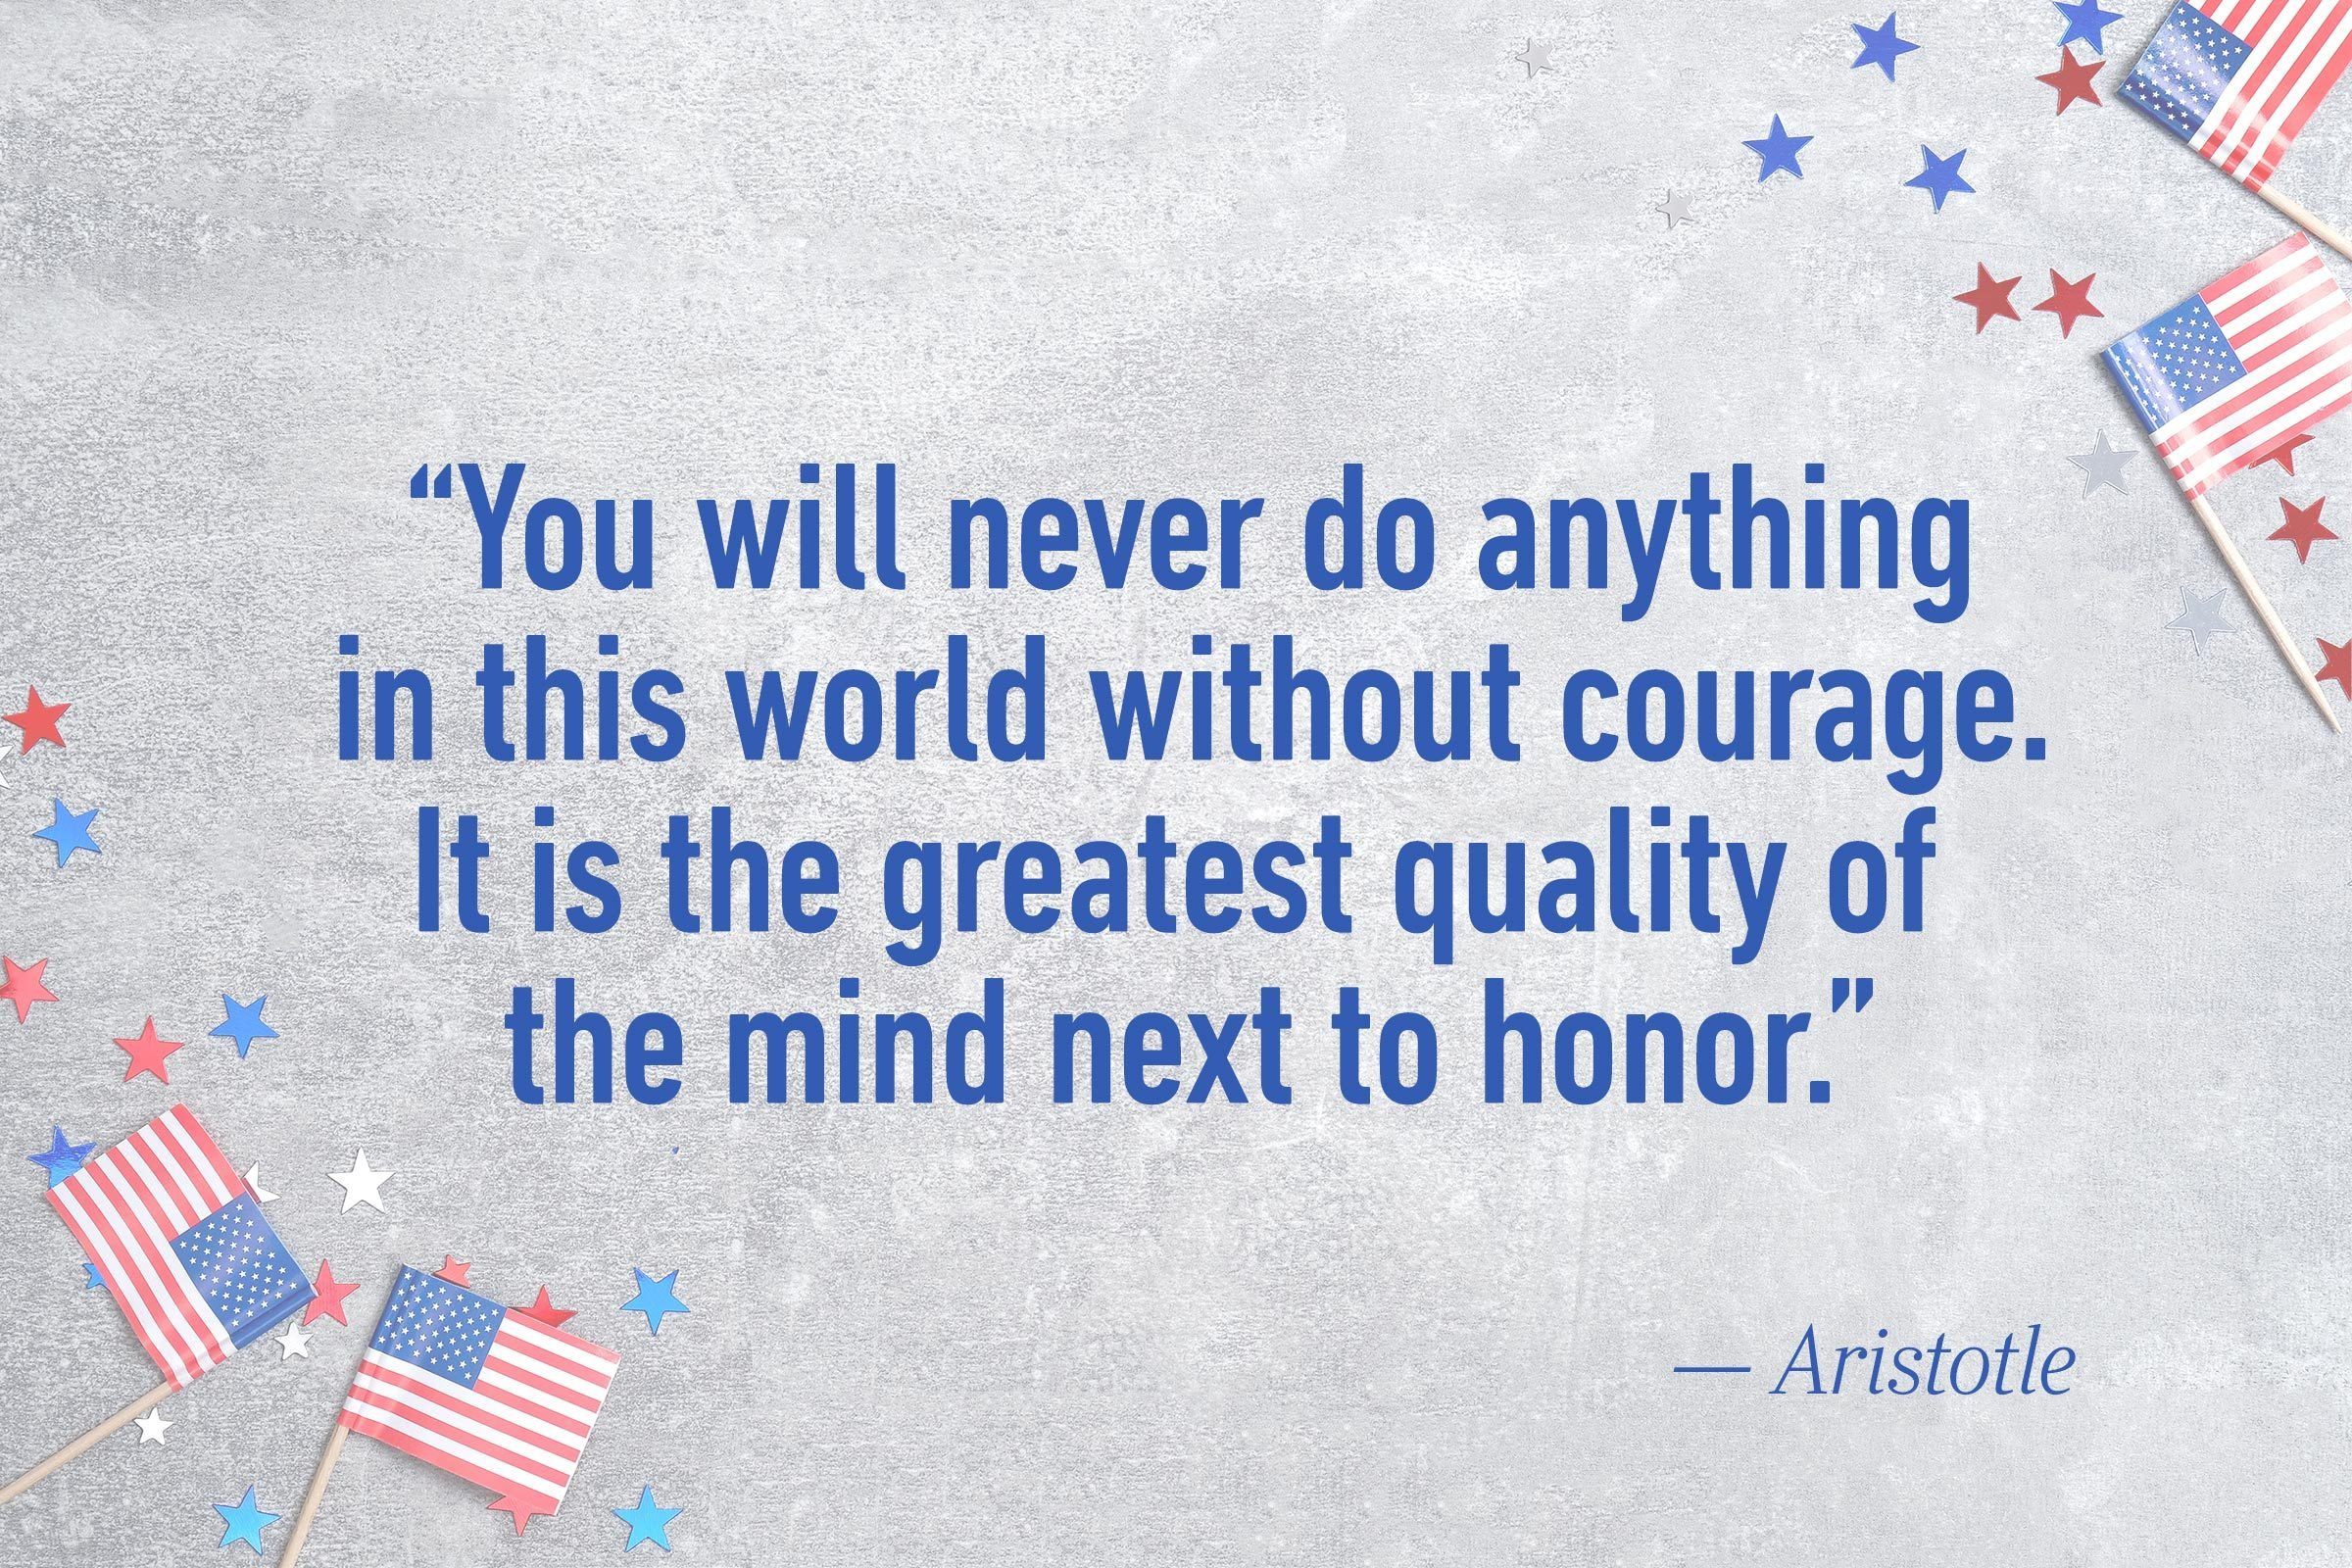 """You will never do anything in this world without courage. It is the greatest quality of the mind next to honor.""—Aristotle"